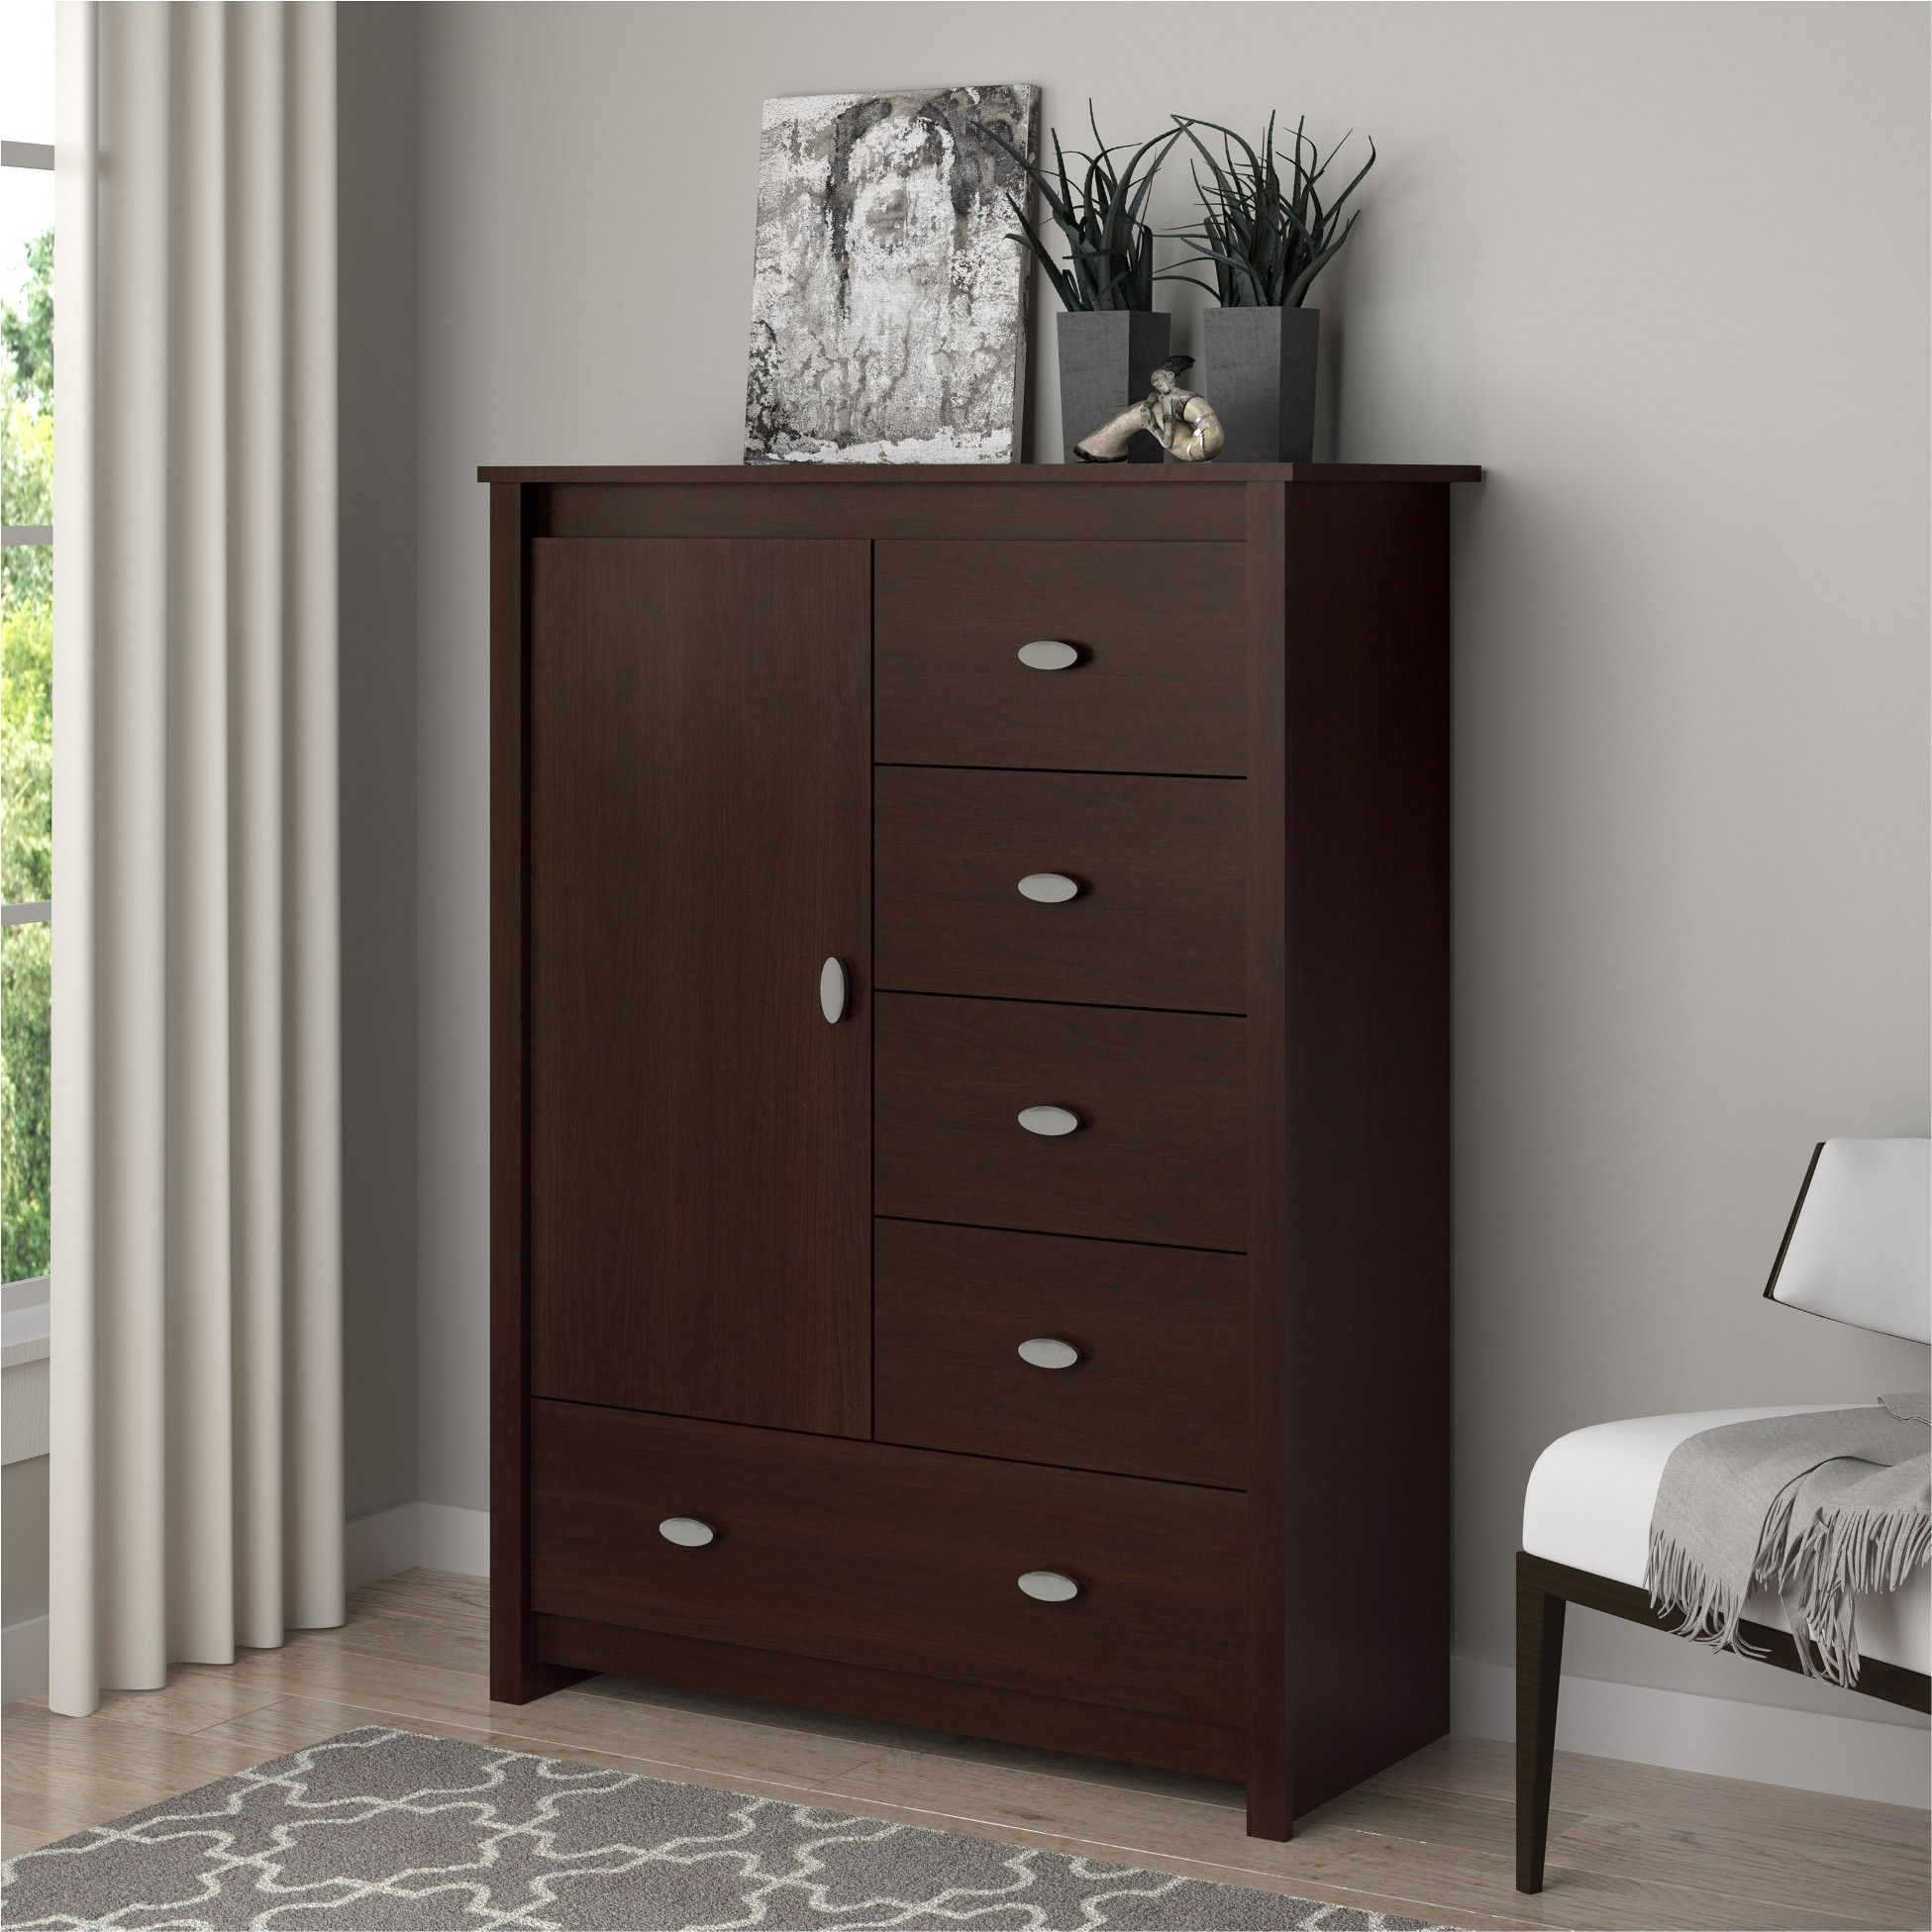 Essential Home Anderson Chest Brown Bedroom Furniture Dresser Bedroom Dressers Interior Design Bedroom